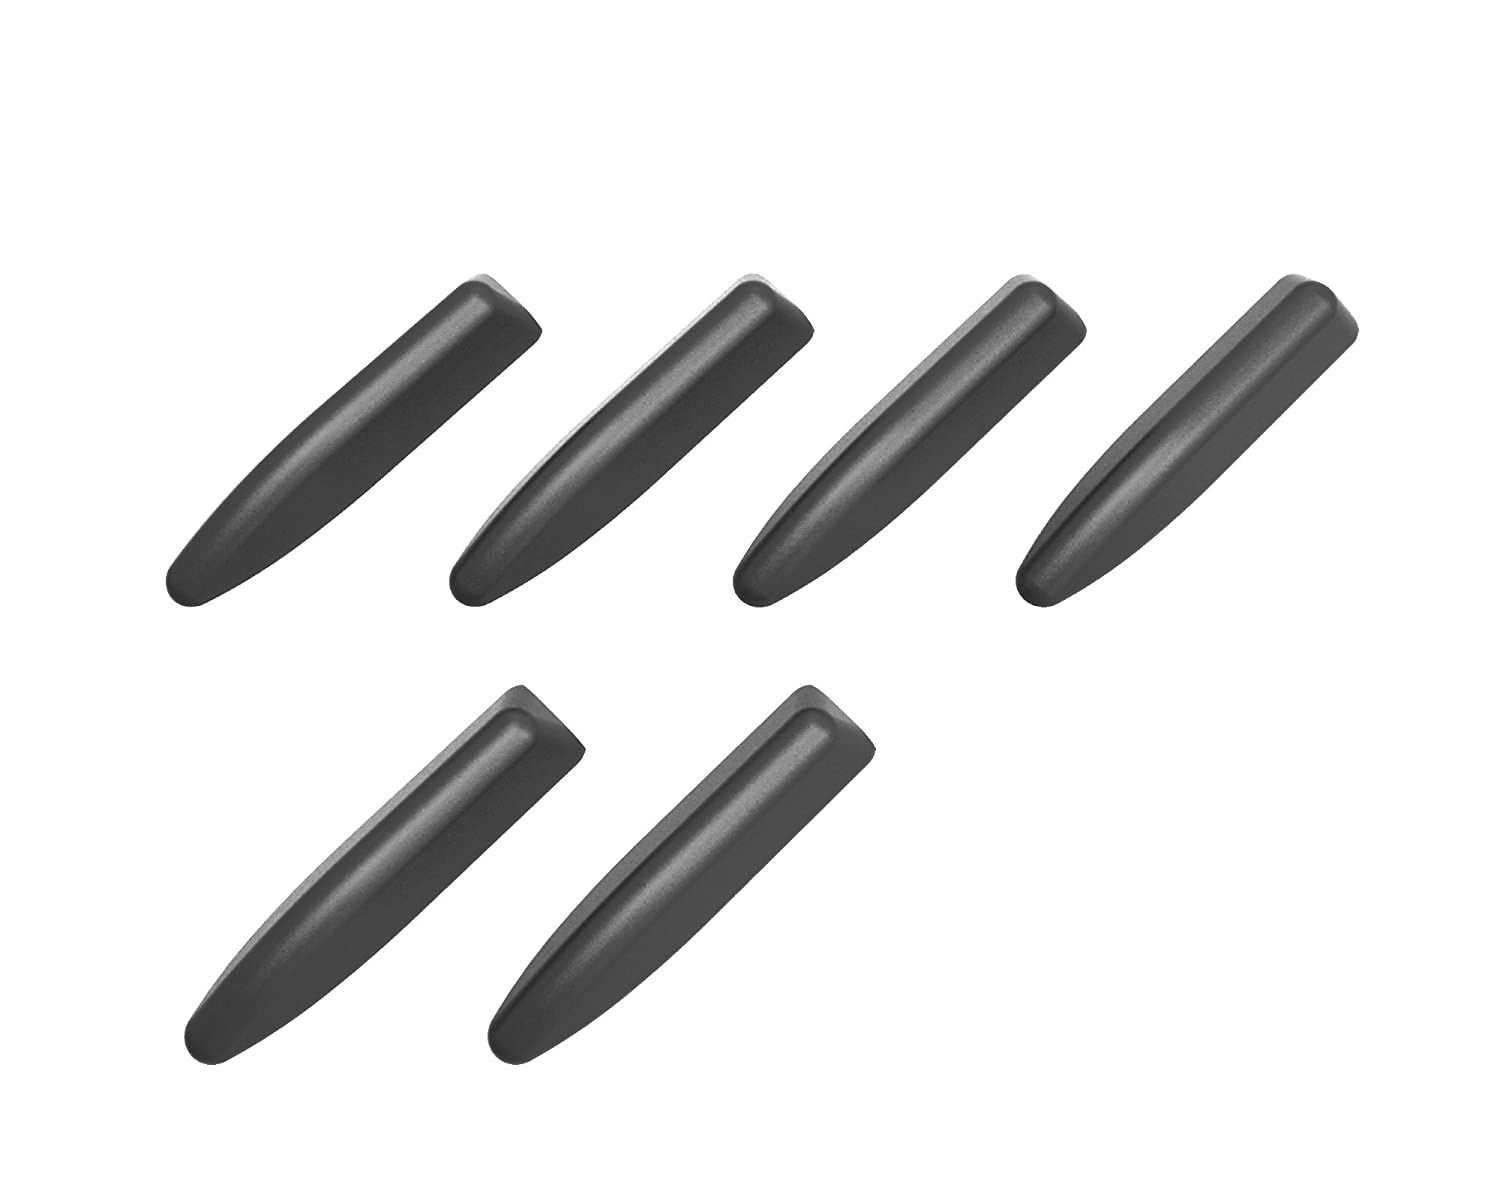 EXEA SEIKOSANGYO CO,LTD EW-137 Aerodynamic Vortex Generator Design Protector Black Color Angular Shape 6 Pcs.